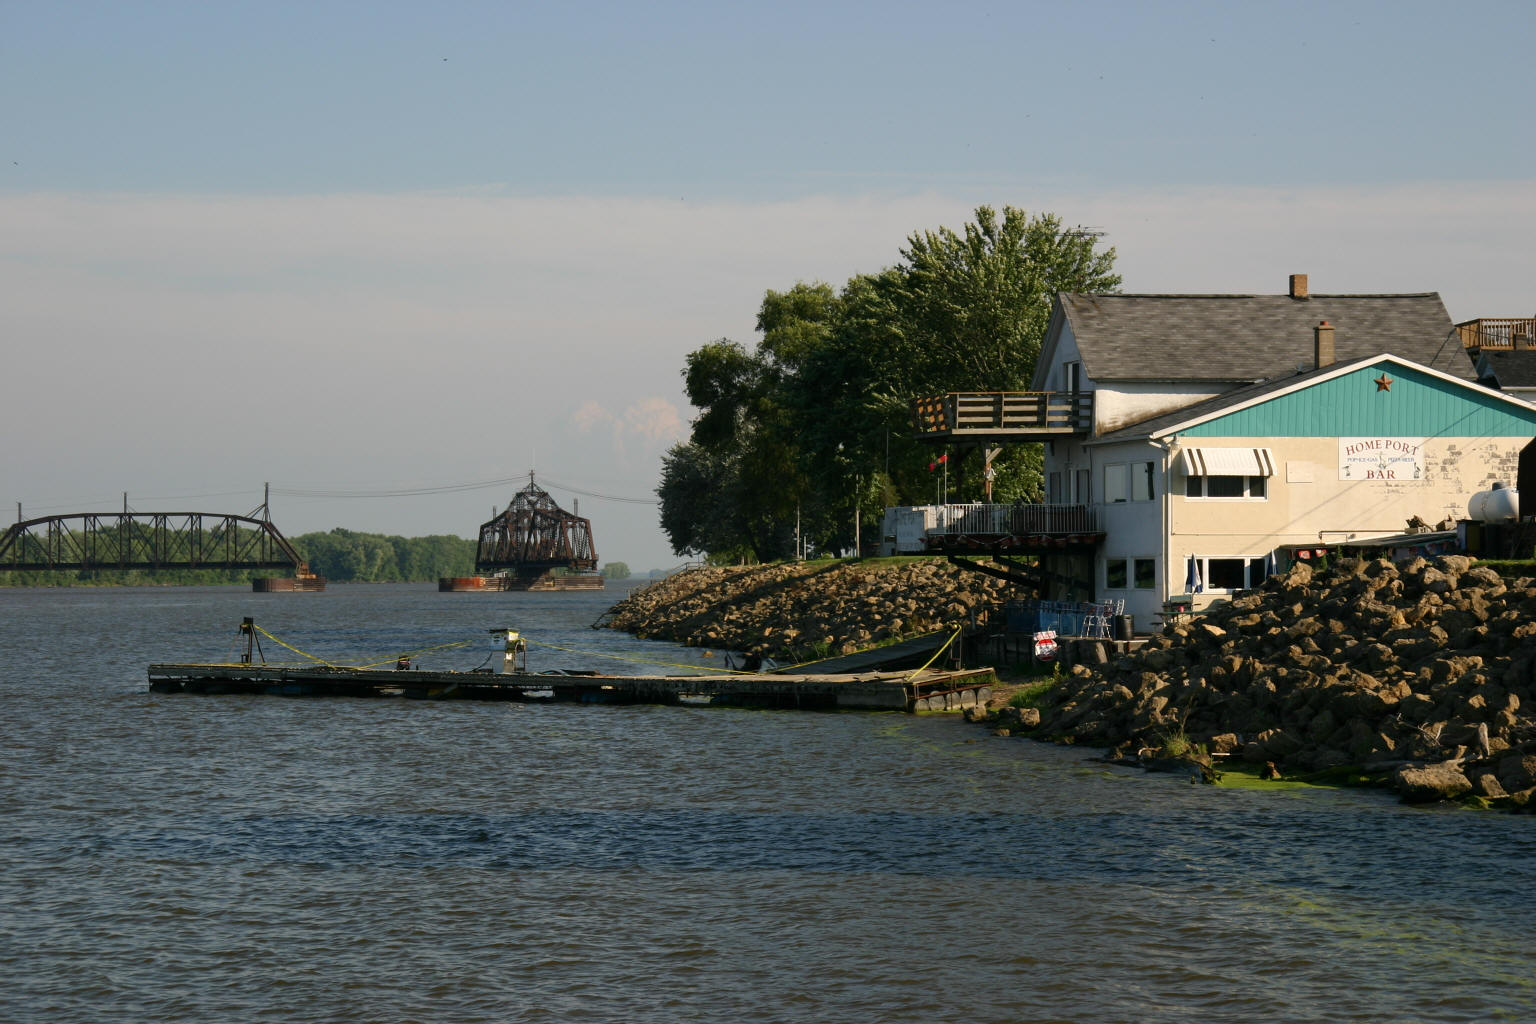 Home Port's dock used to be parallel to the shore